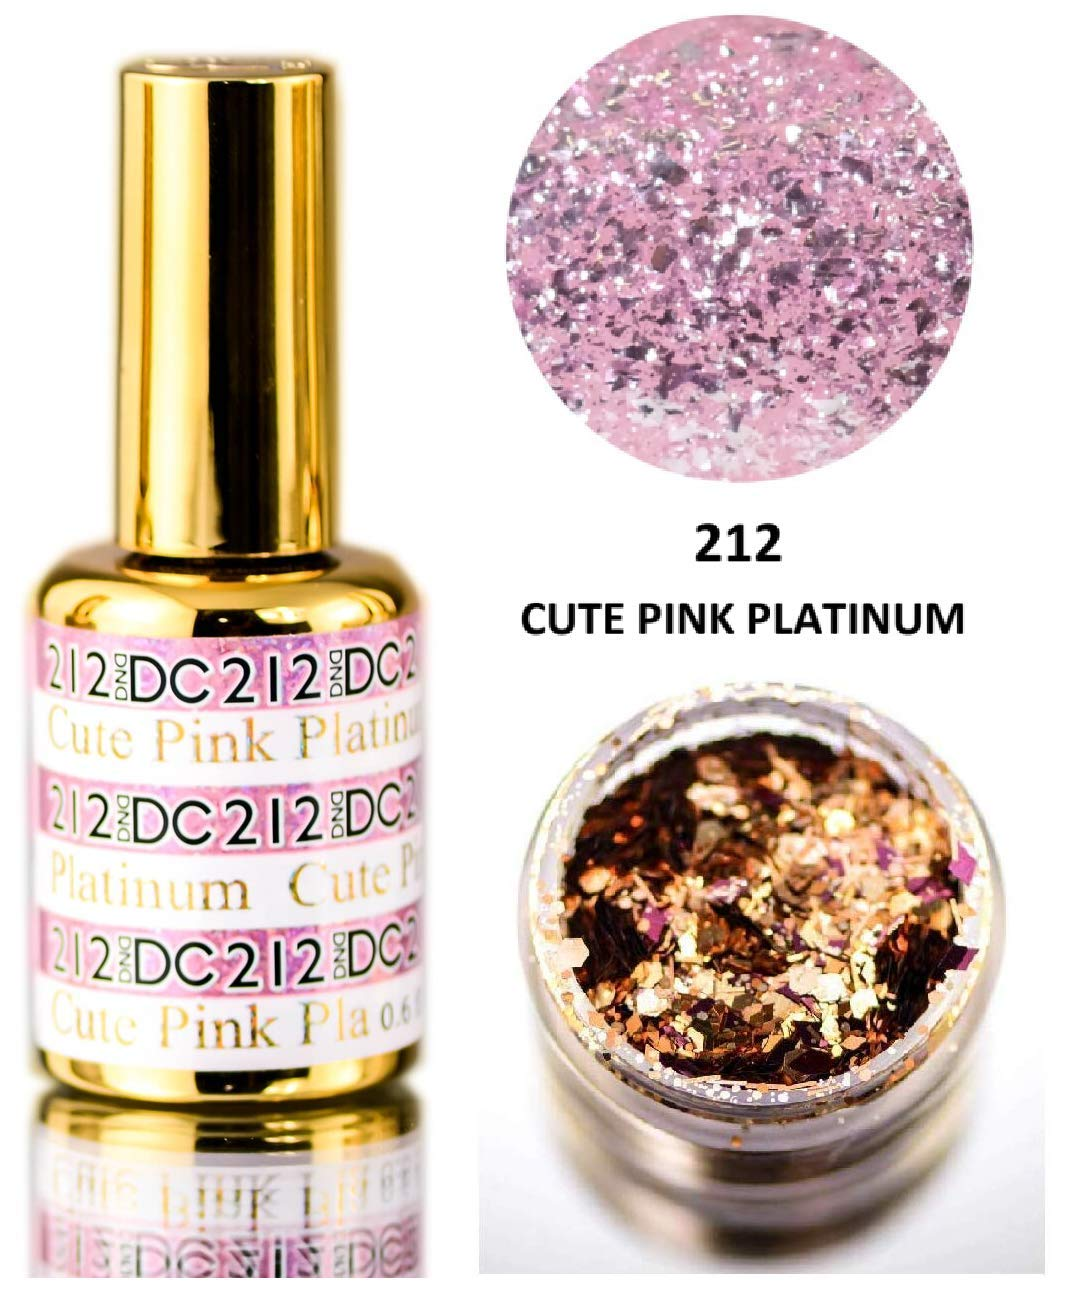 DND DC PLATINUM Gel Polish, Premium Gel Polish for Nails Containing Glitter, Daisy Nails (with bonus side Glitter) Made in USA (Cute Pink Platinum (212)) by DND DC